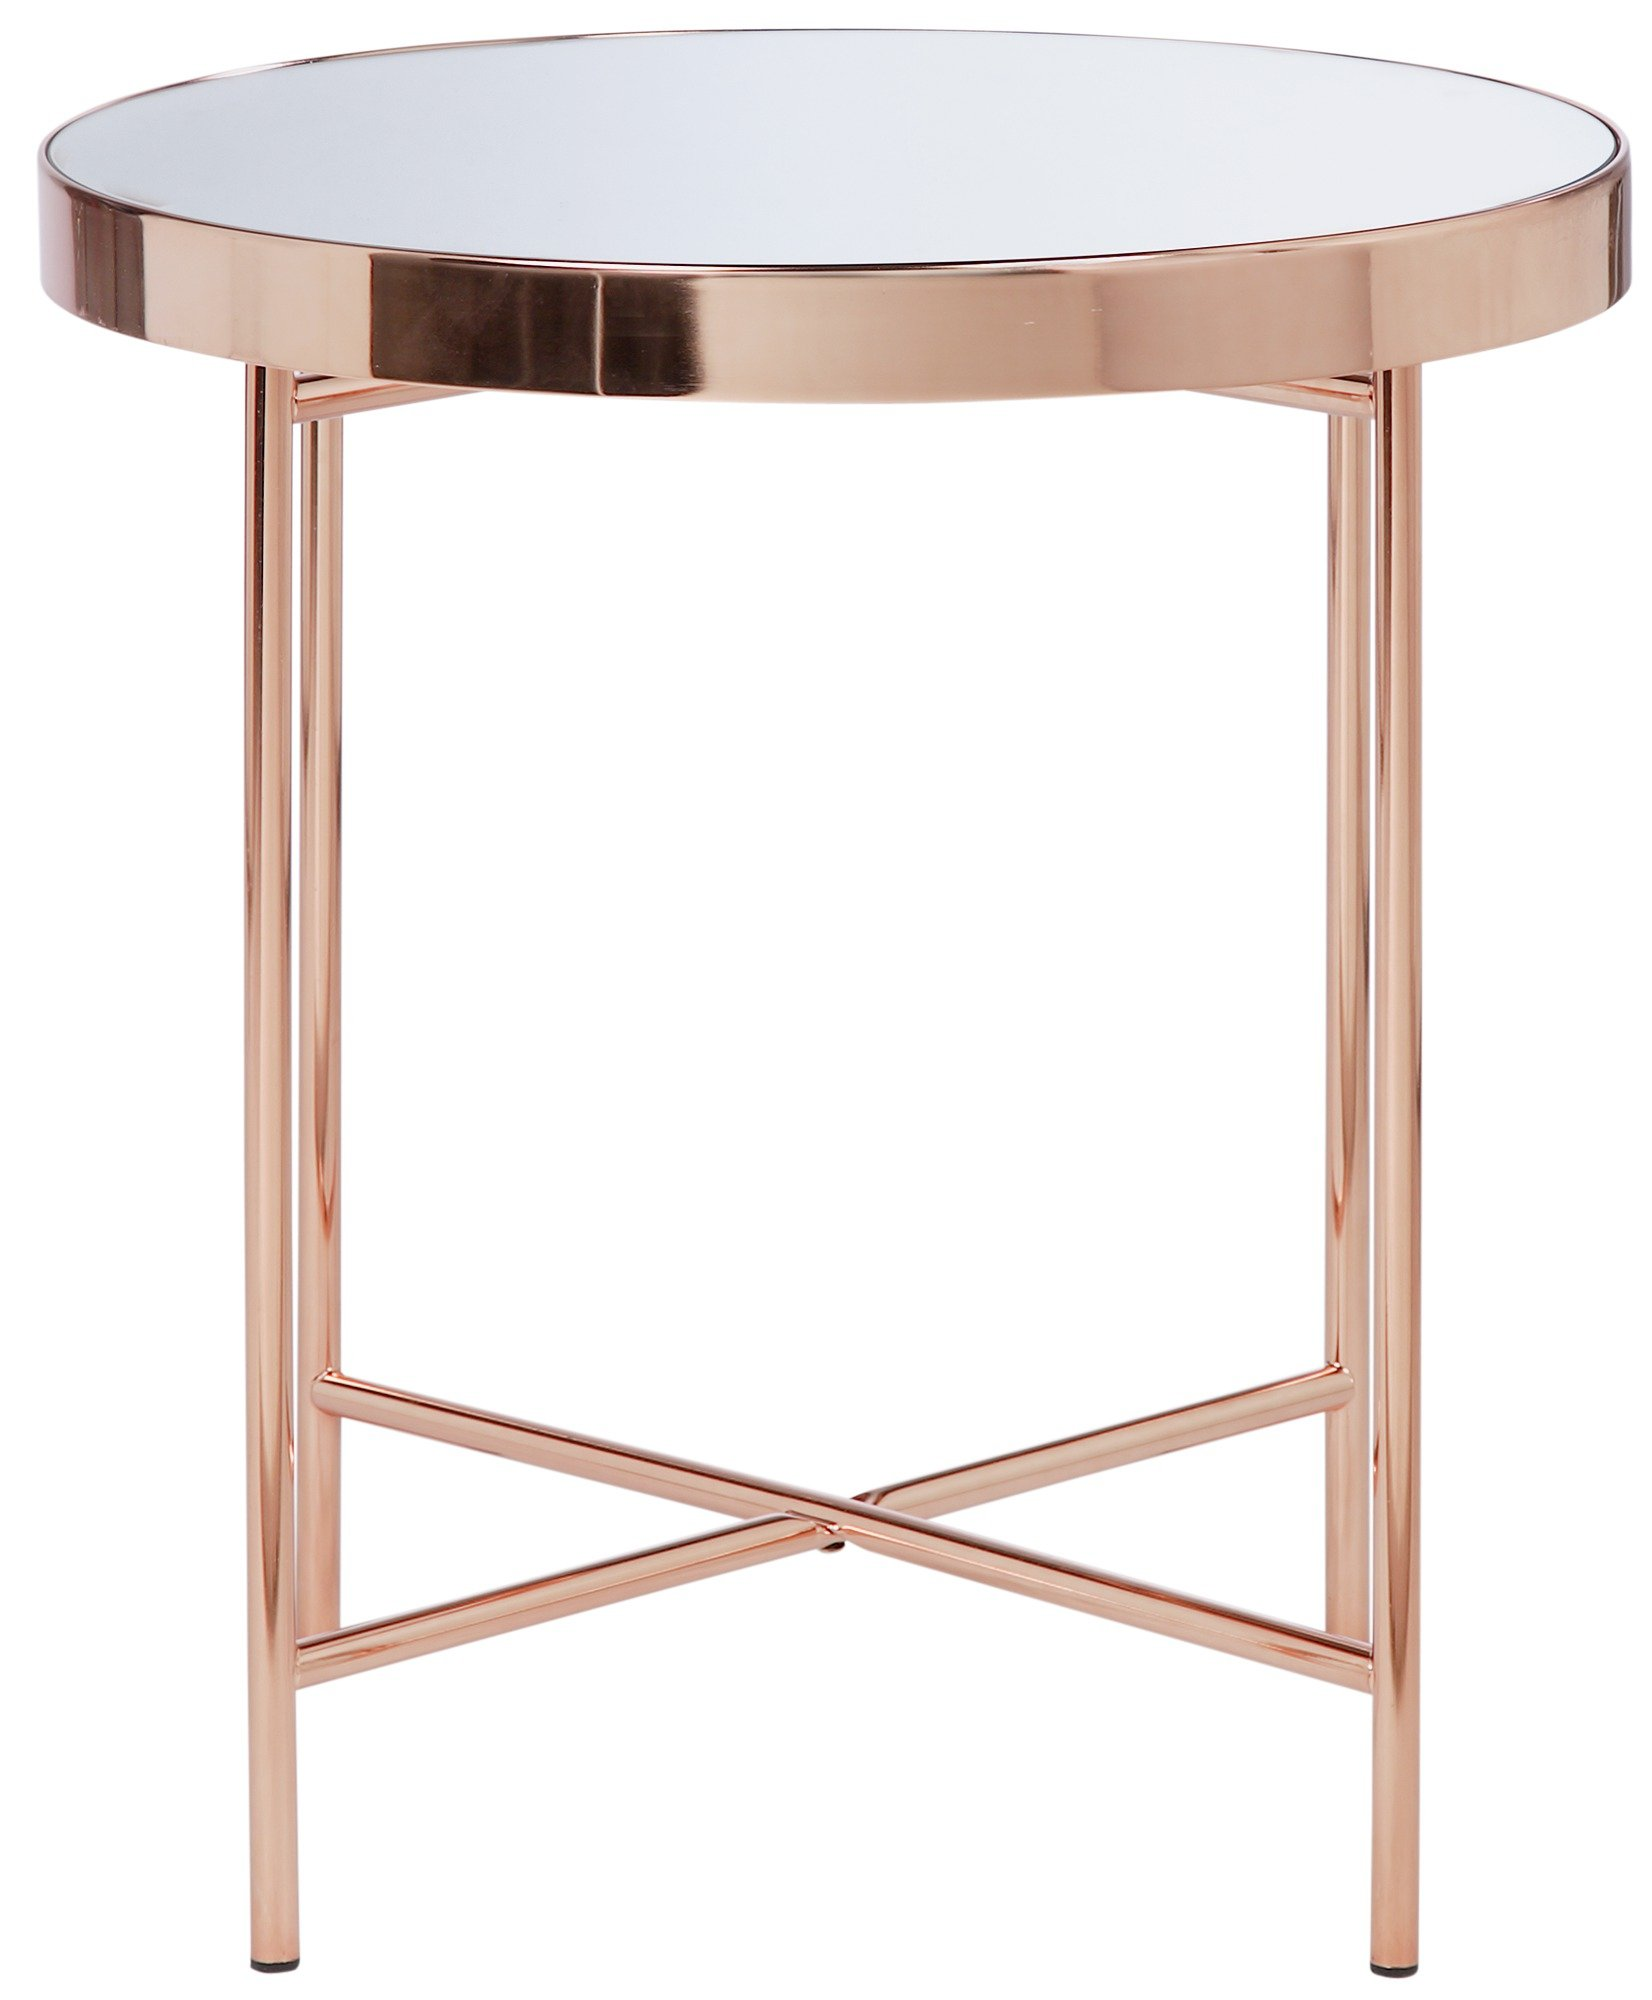 buy collection round glass top side table - copper plated at argos